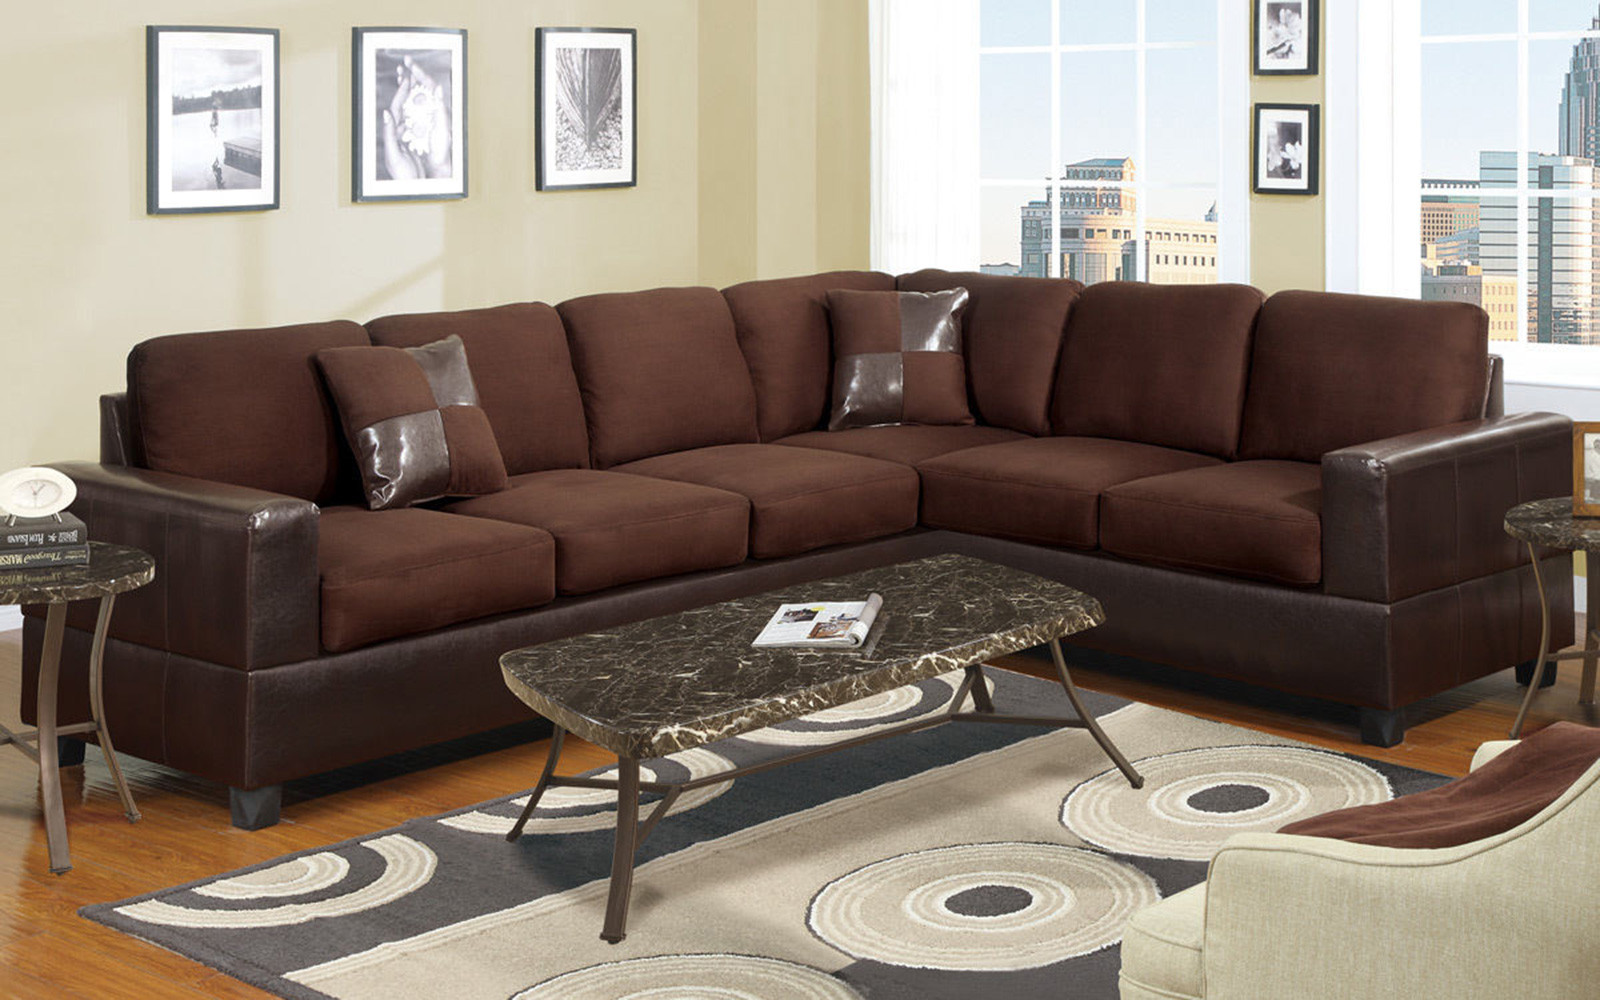 2 Piece Modern Large Microfiber And Faux Leather Sectional Sofa